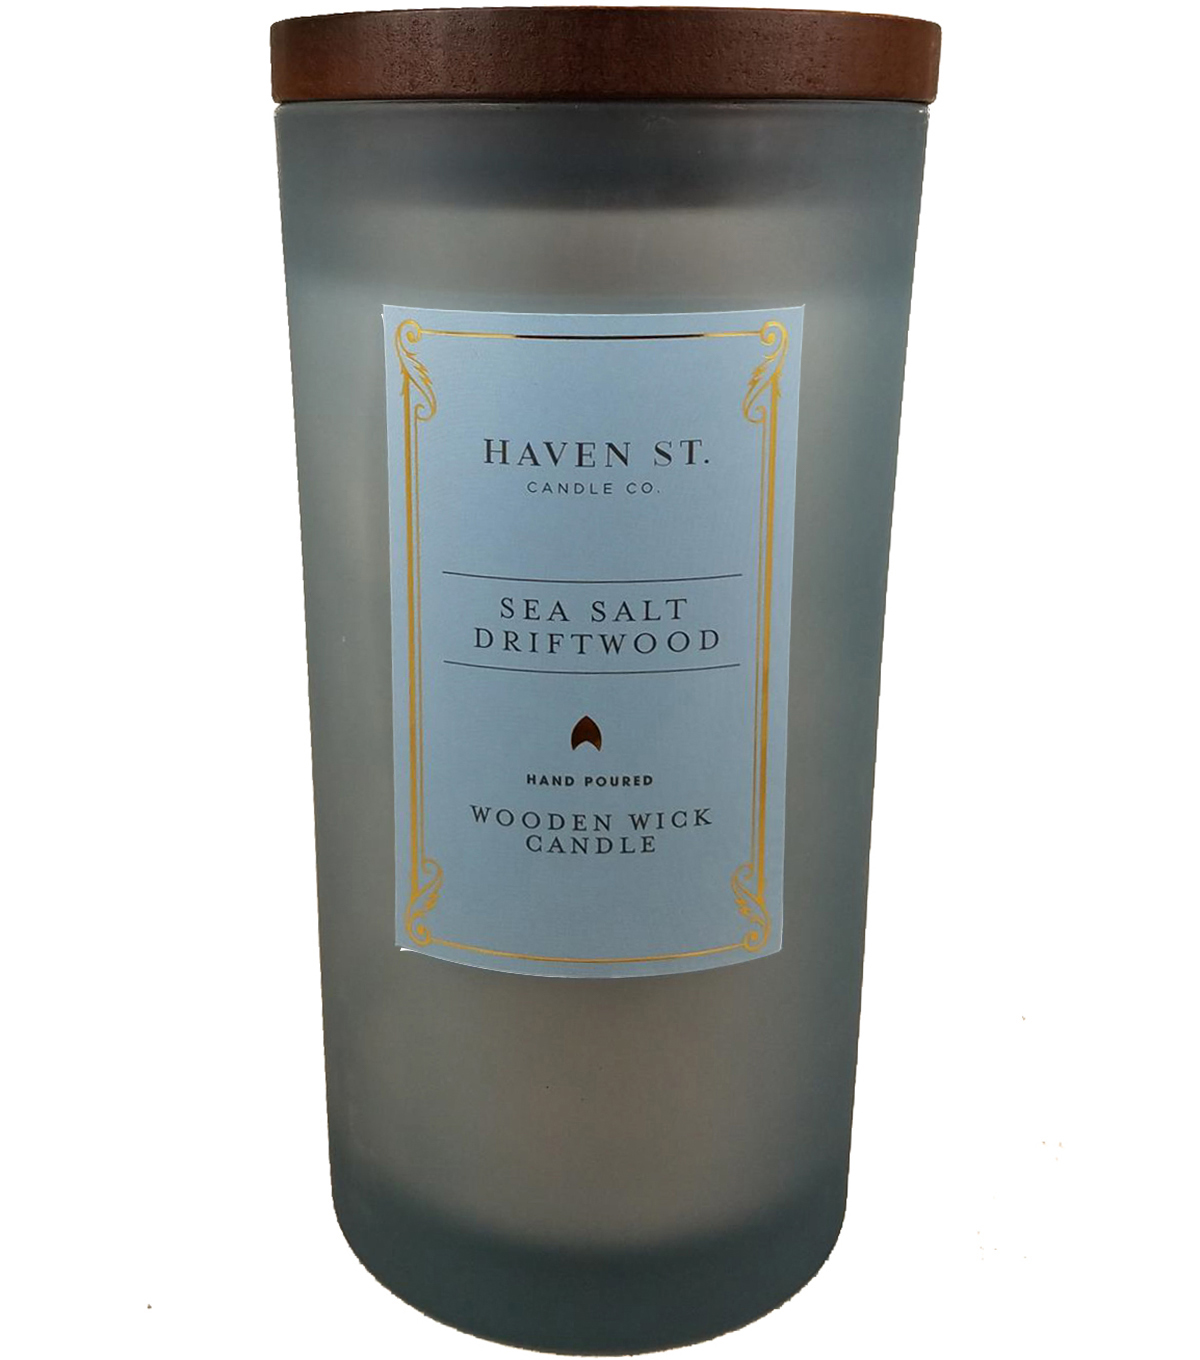 Haven St. Candle Co. 11 oz. Sea Salt Driftwood Scented Jar Candle